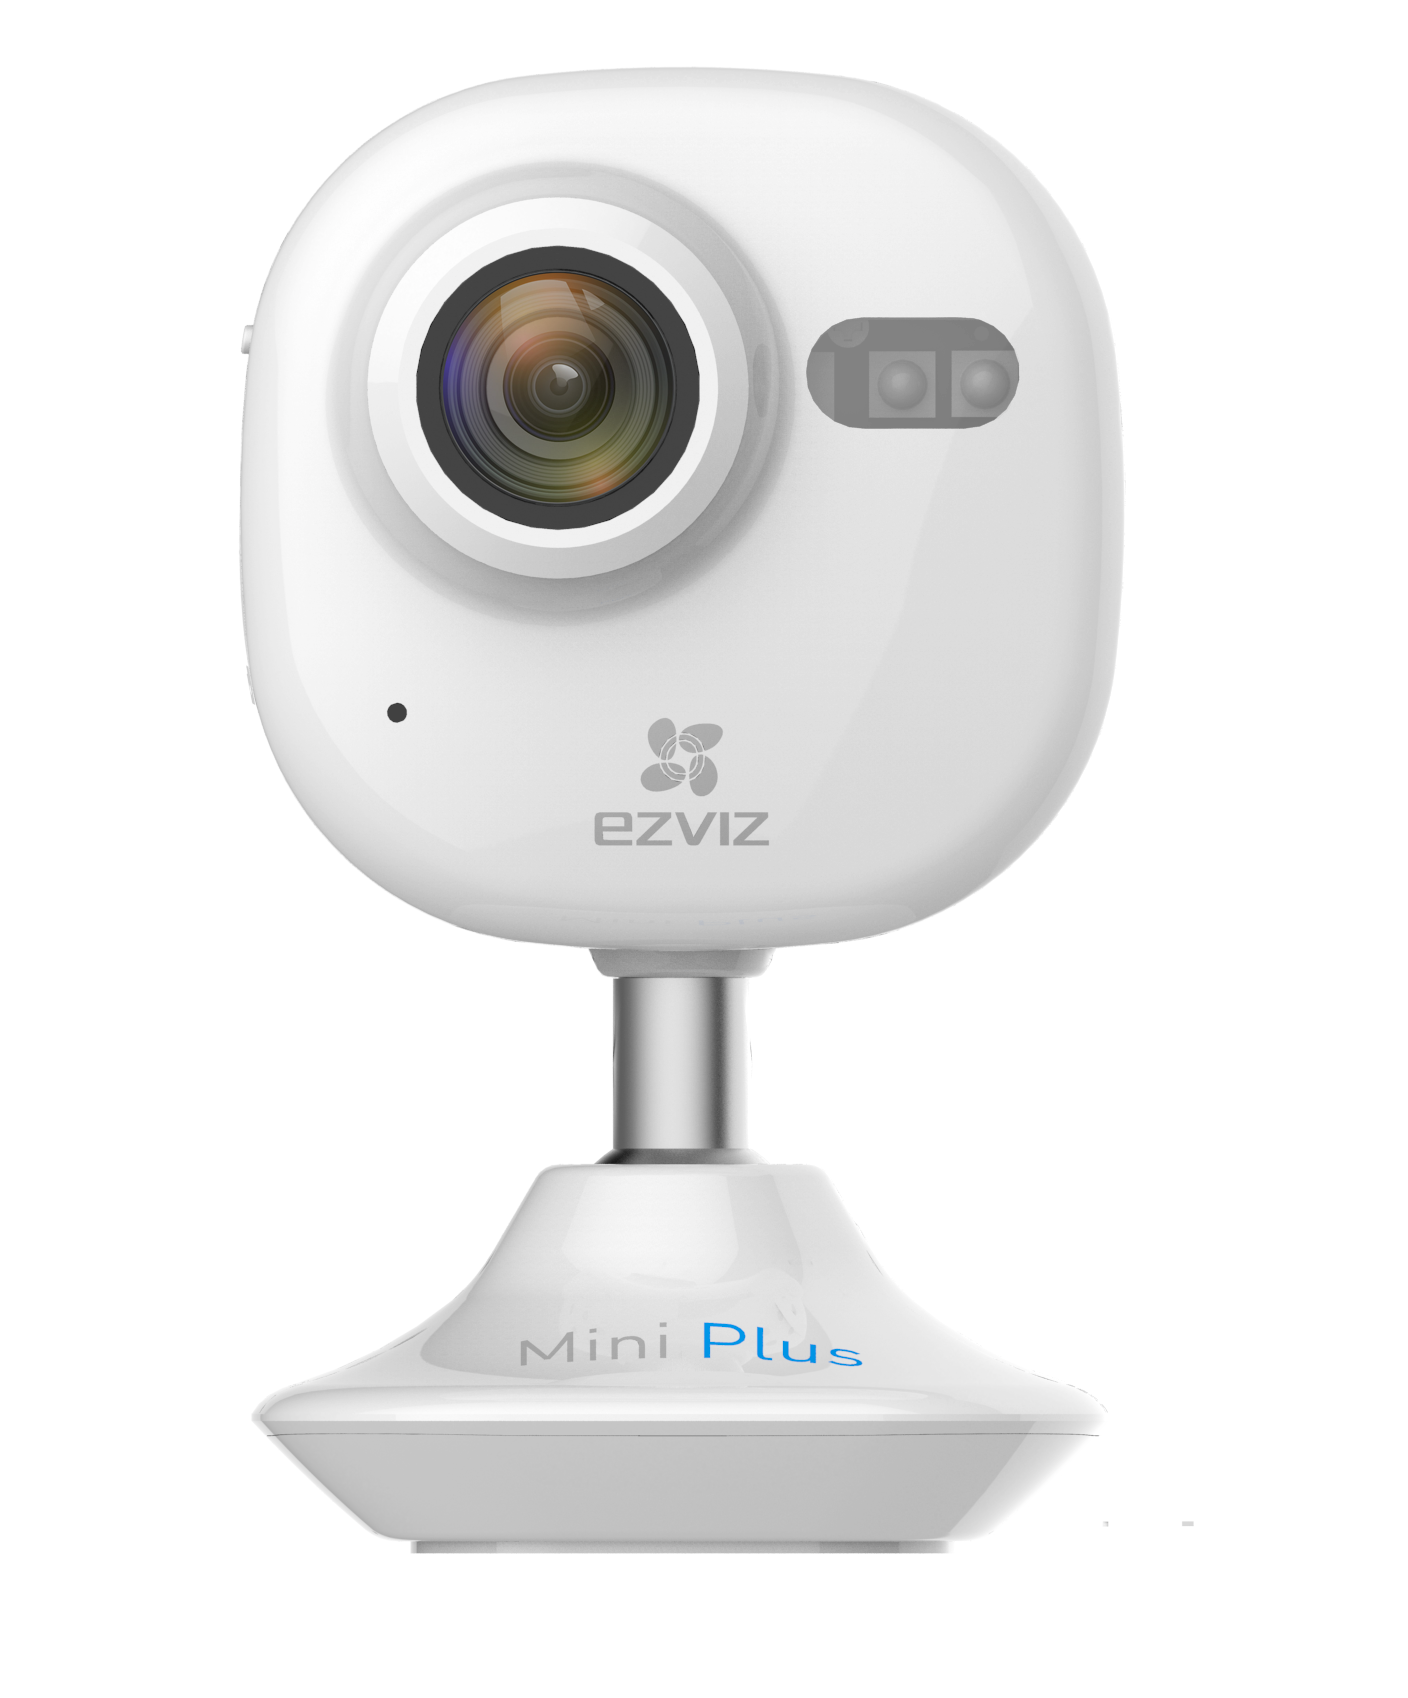 EZVIZ Mini Plus - Full HD камера